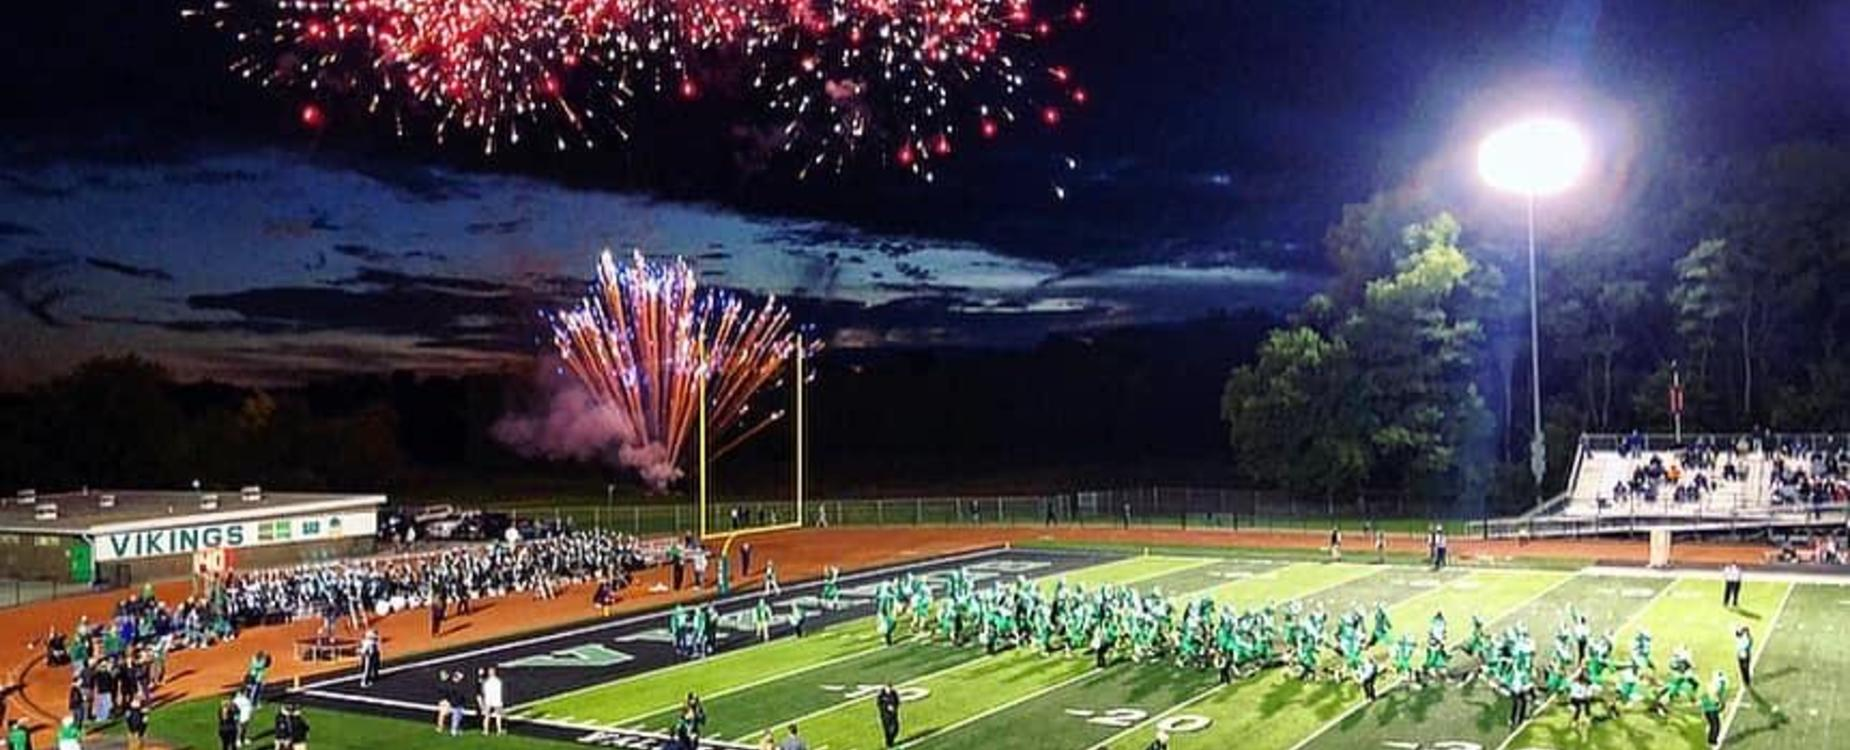 VHS Football Field with fireworks